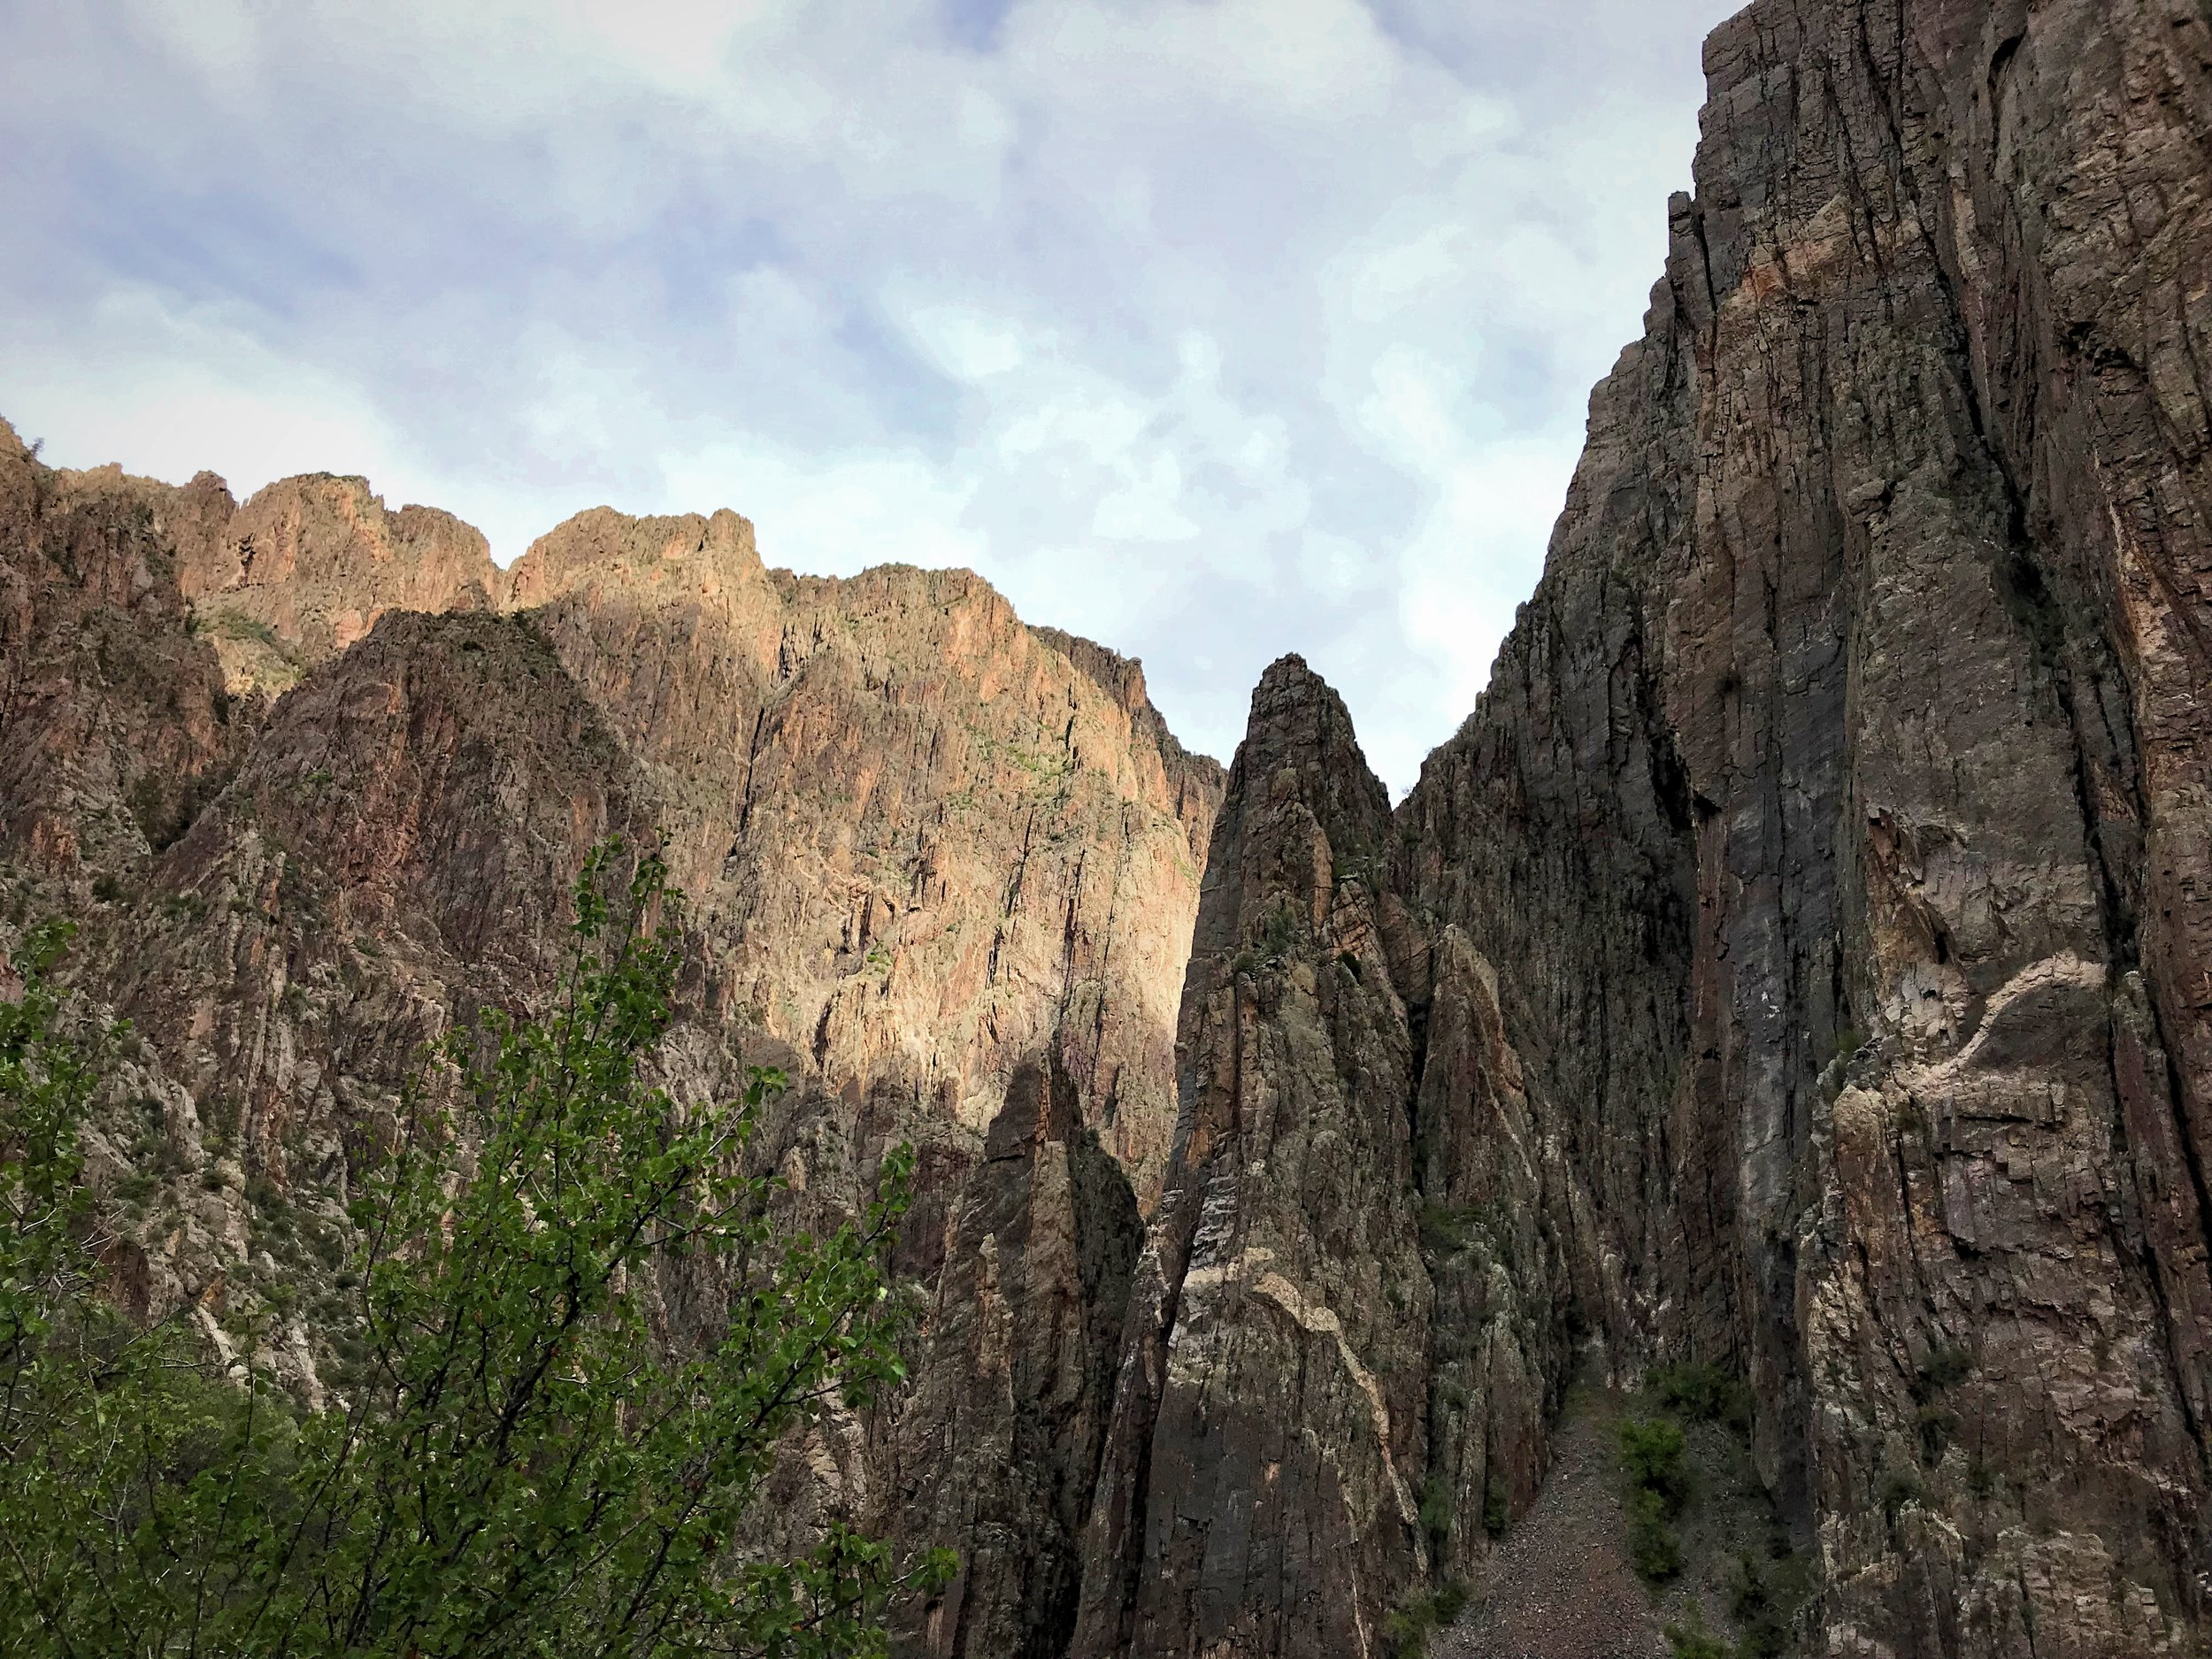 Since the Black Canyon of the Gunnison National Park doesn't have many developed hiking trails, taking on one of the inner canyon routes is a good way to experience more of the canyon.